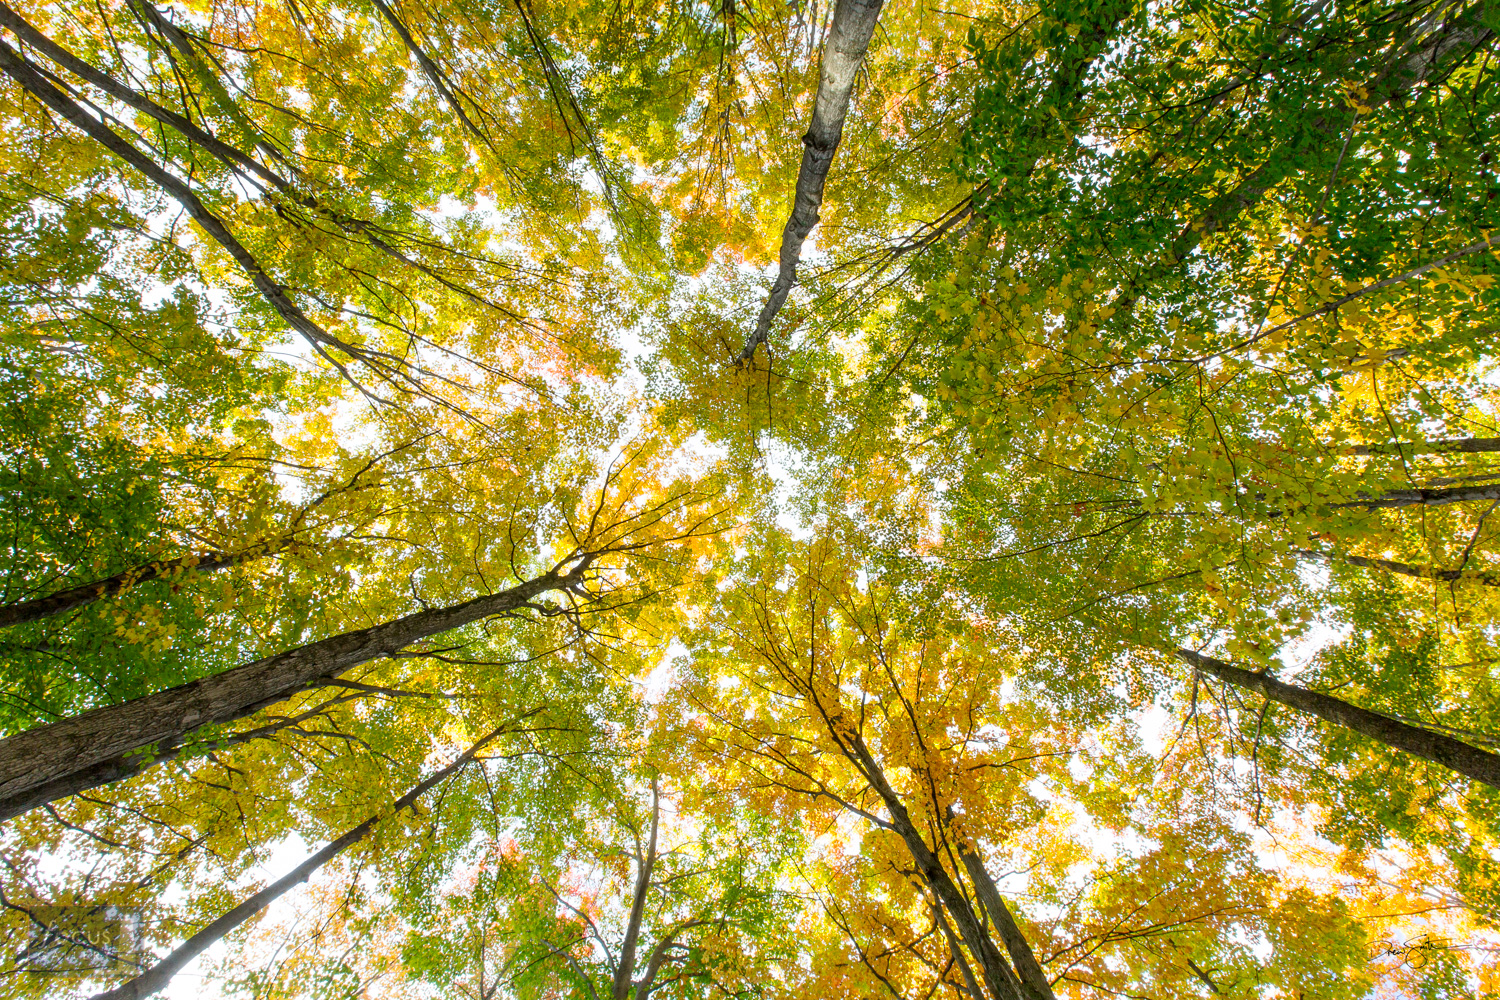 Looking up at trees in autumn with fall colors.